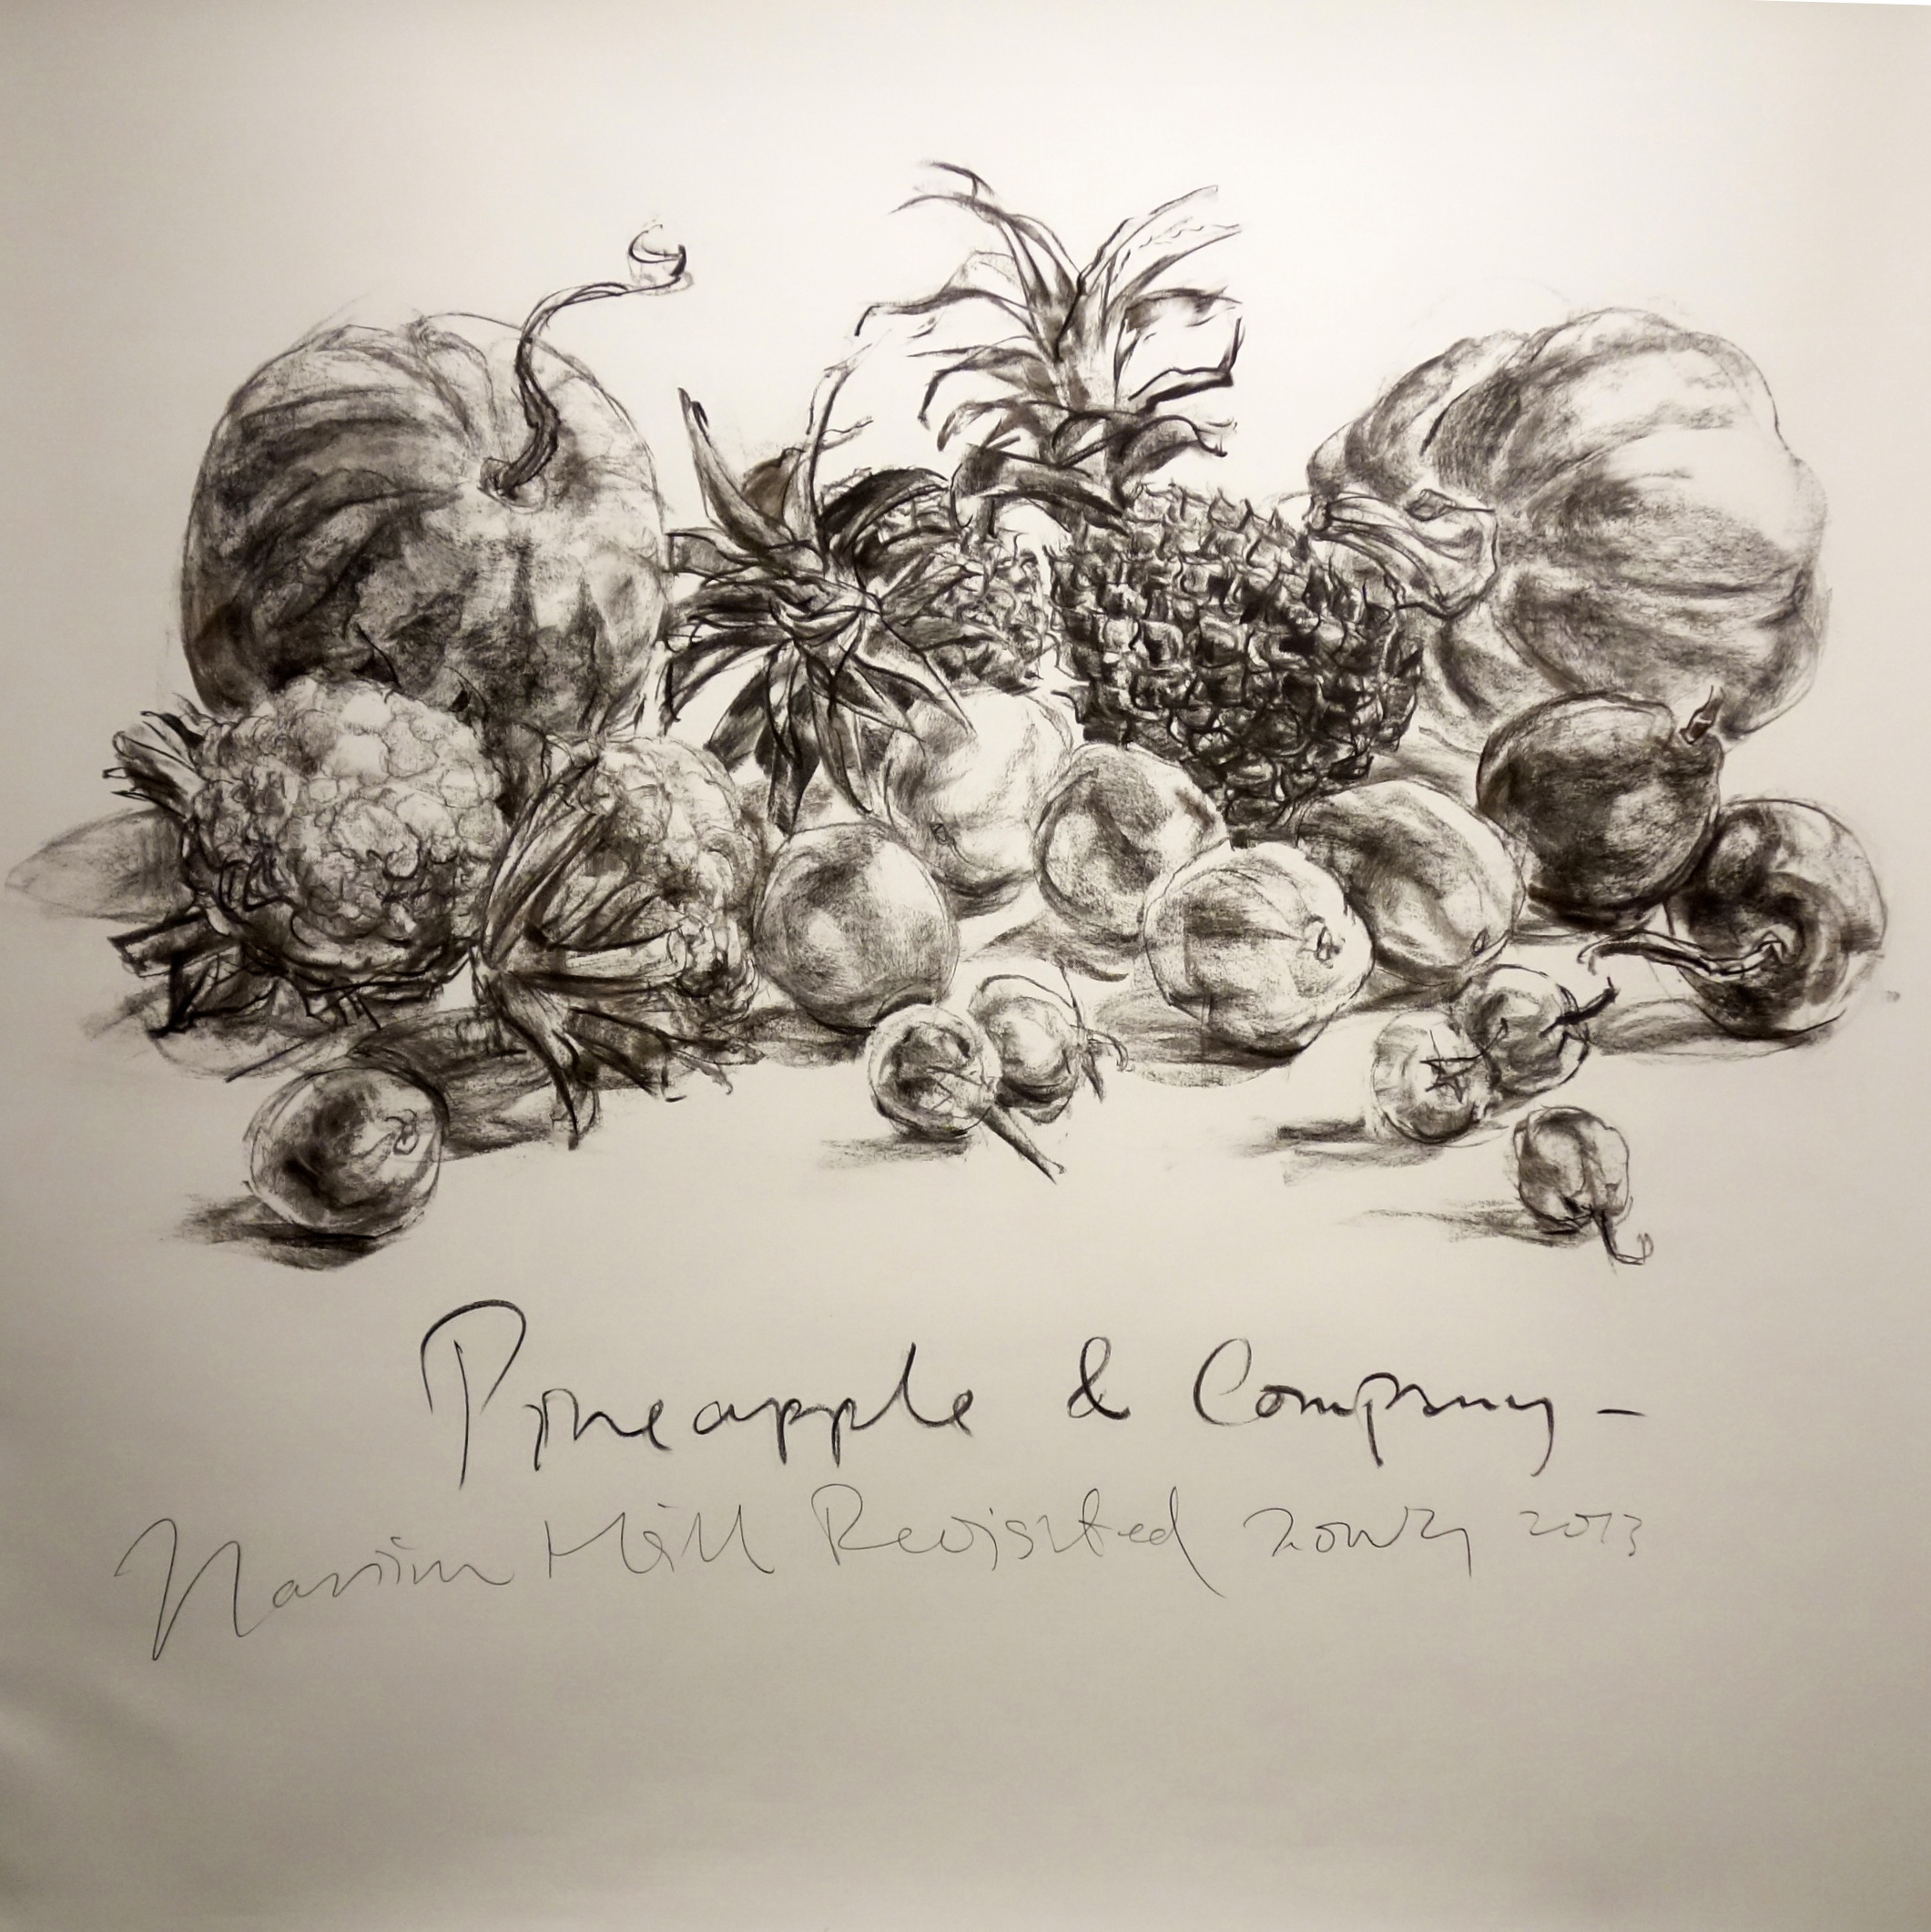 Pineapple & Company   2013 Charcoal on paper approx. H120 x W120 cm